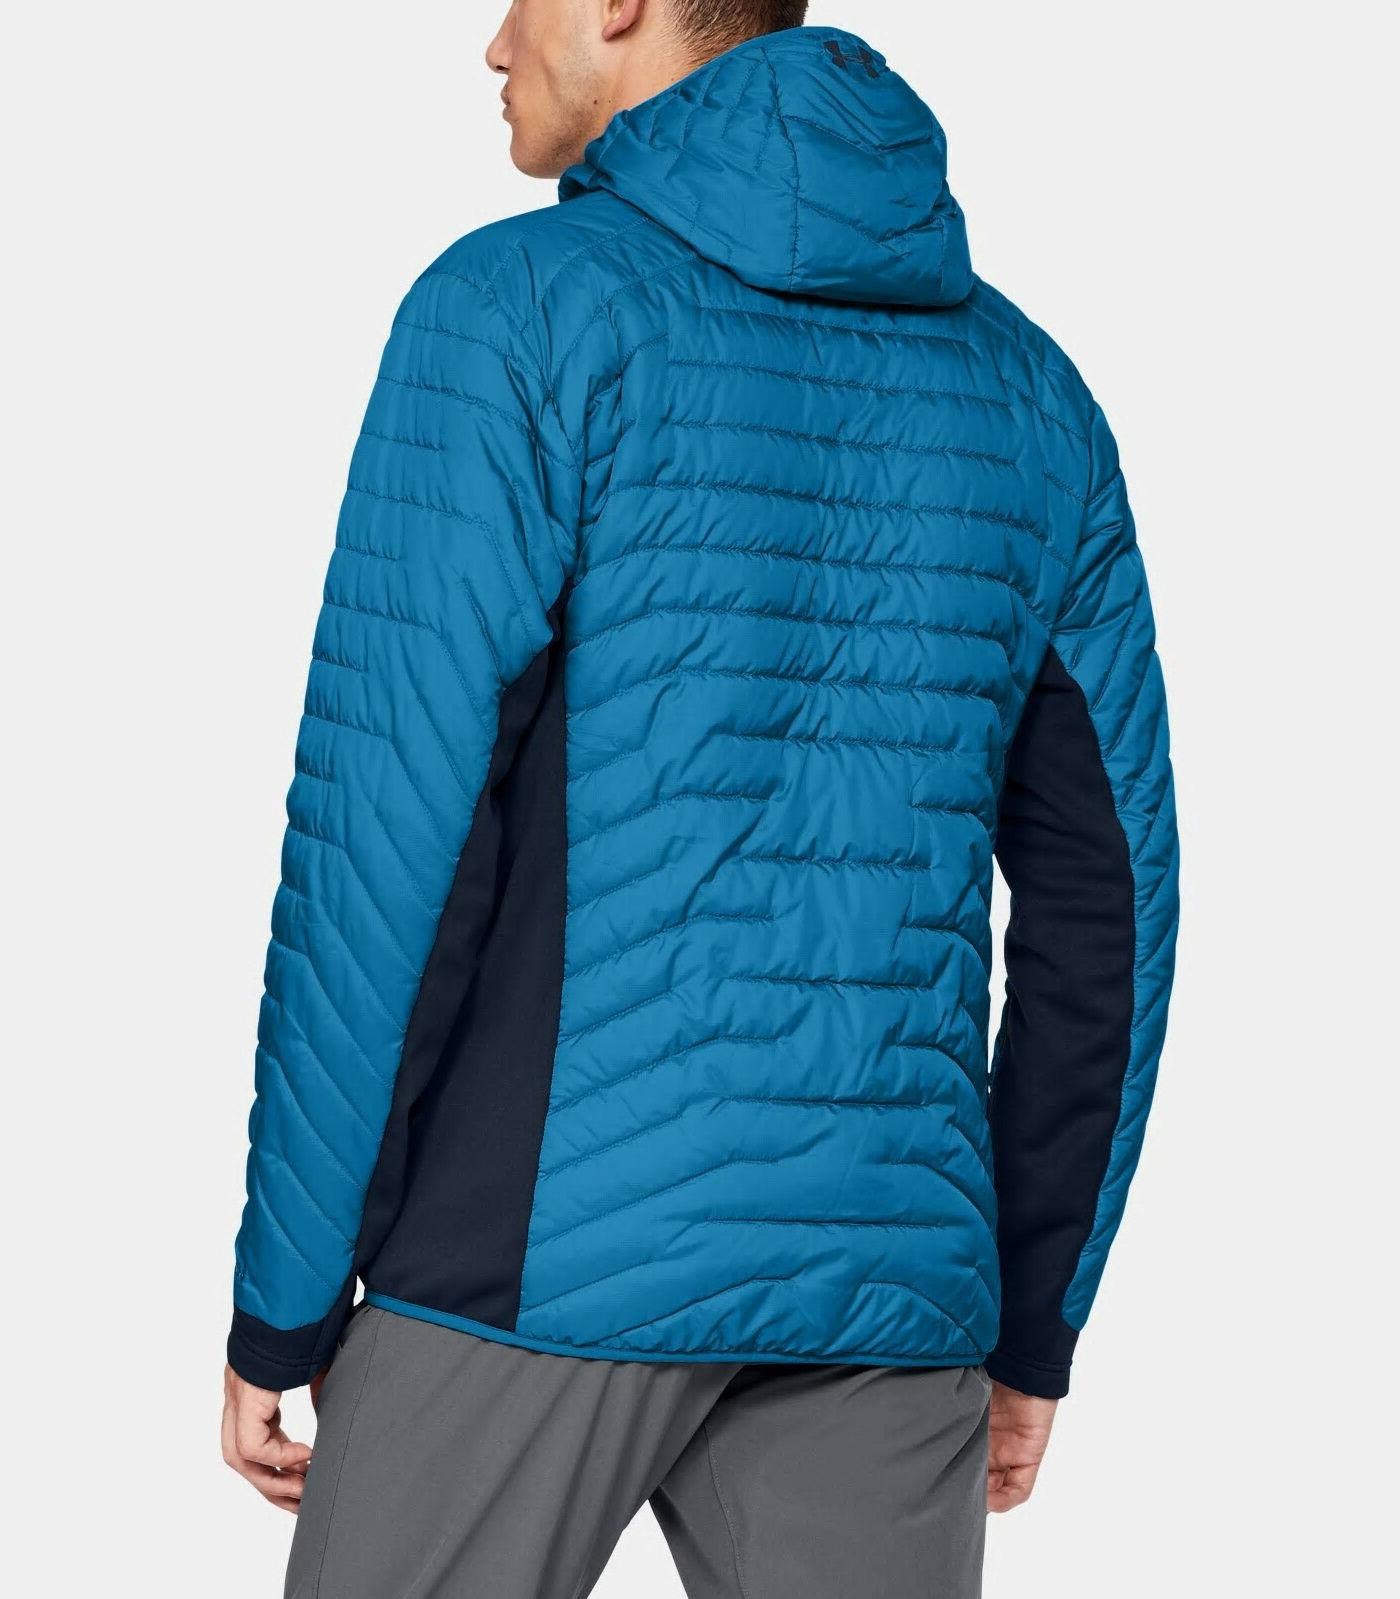 NEW UNDER ARMOUR XL Reactor Hooded Blue